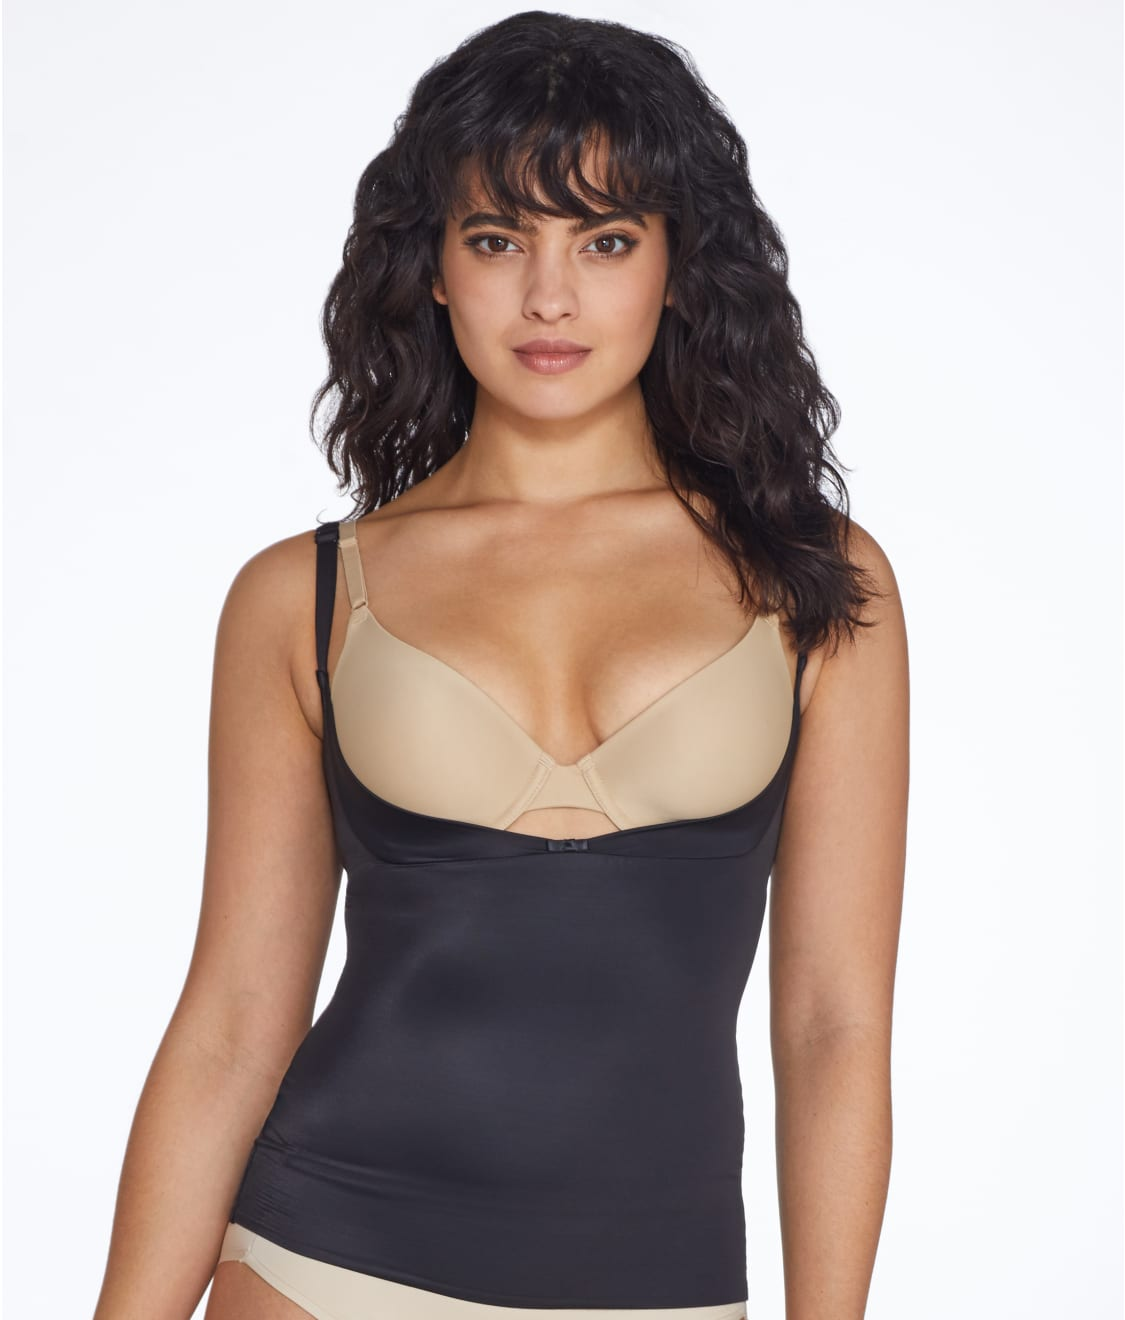 TC Fine Intimates Luxurious Comfort Firm Control Open-Bust Camisole